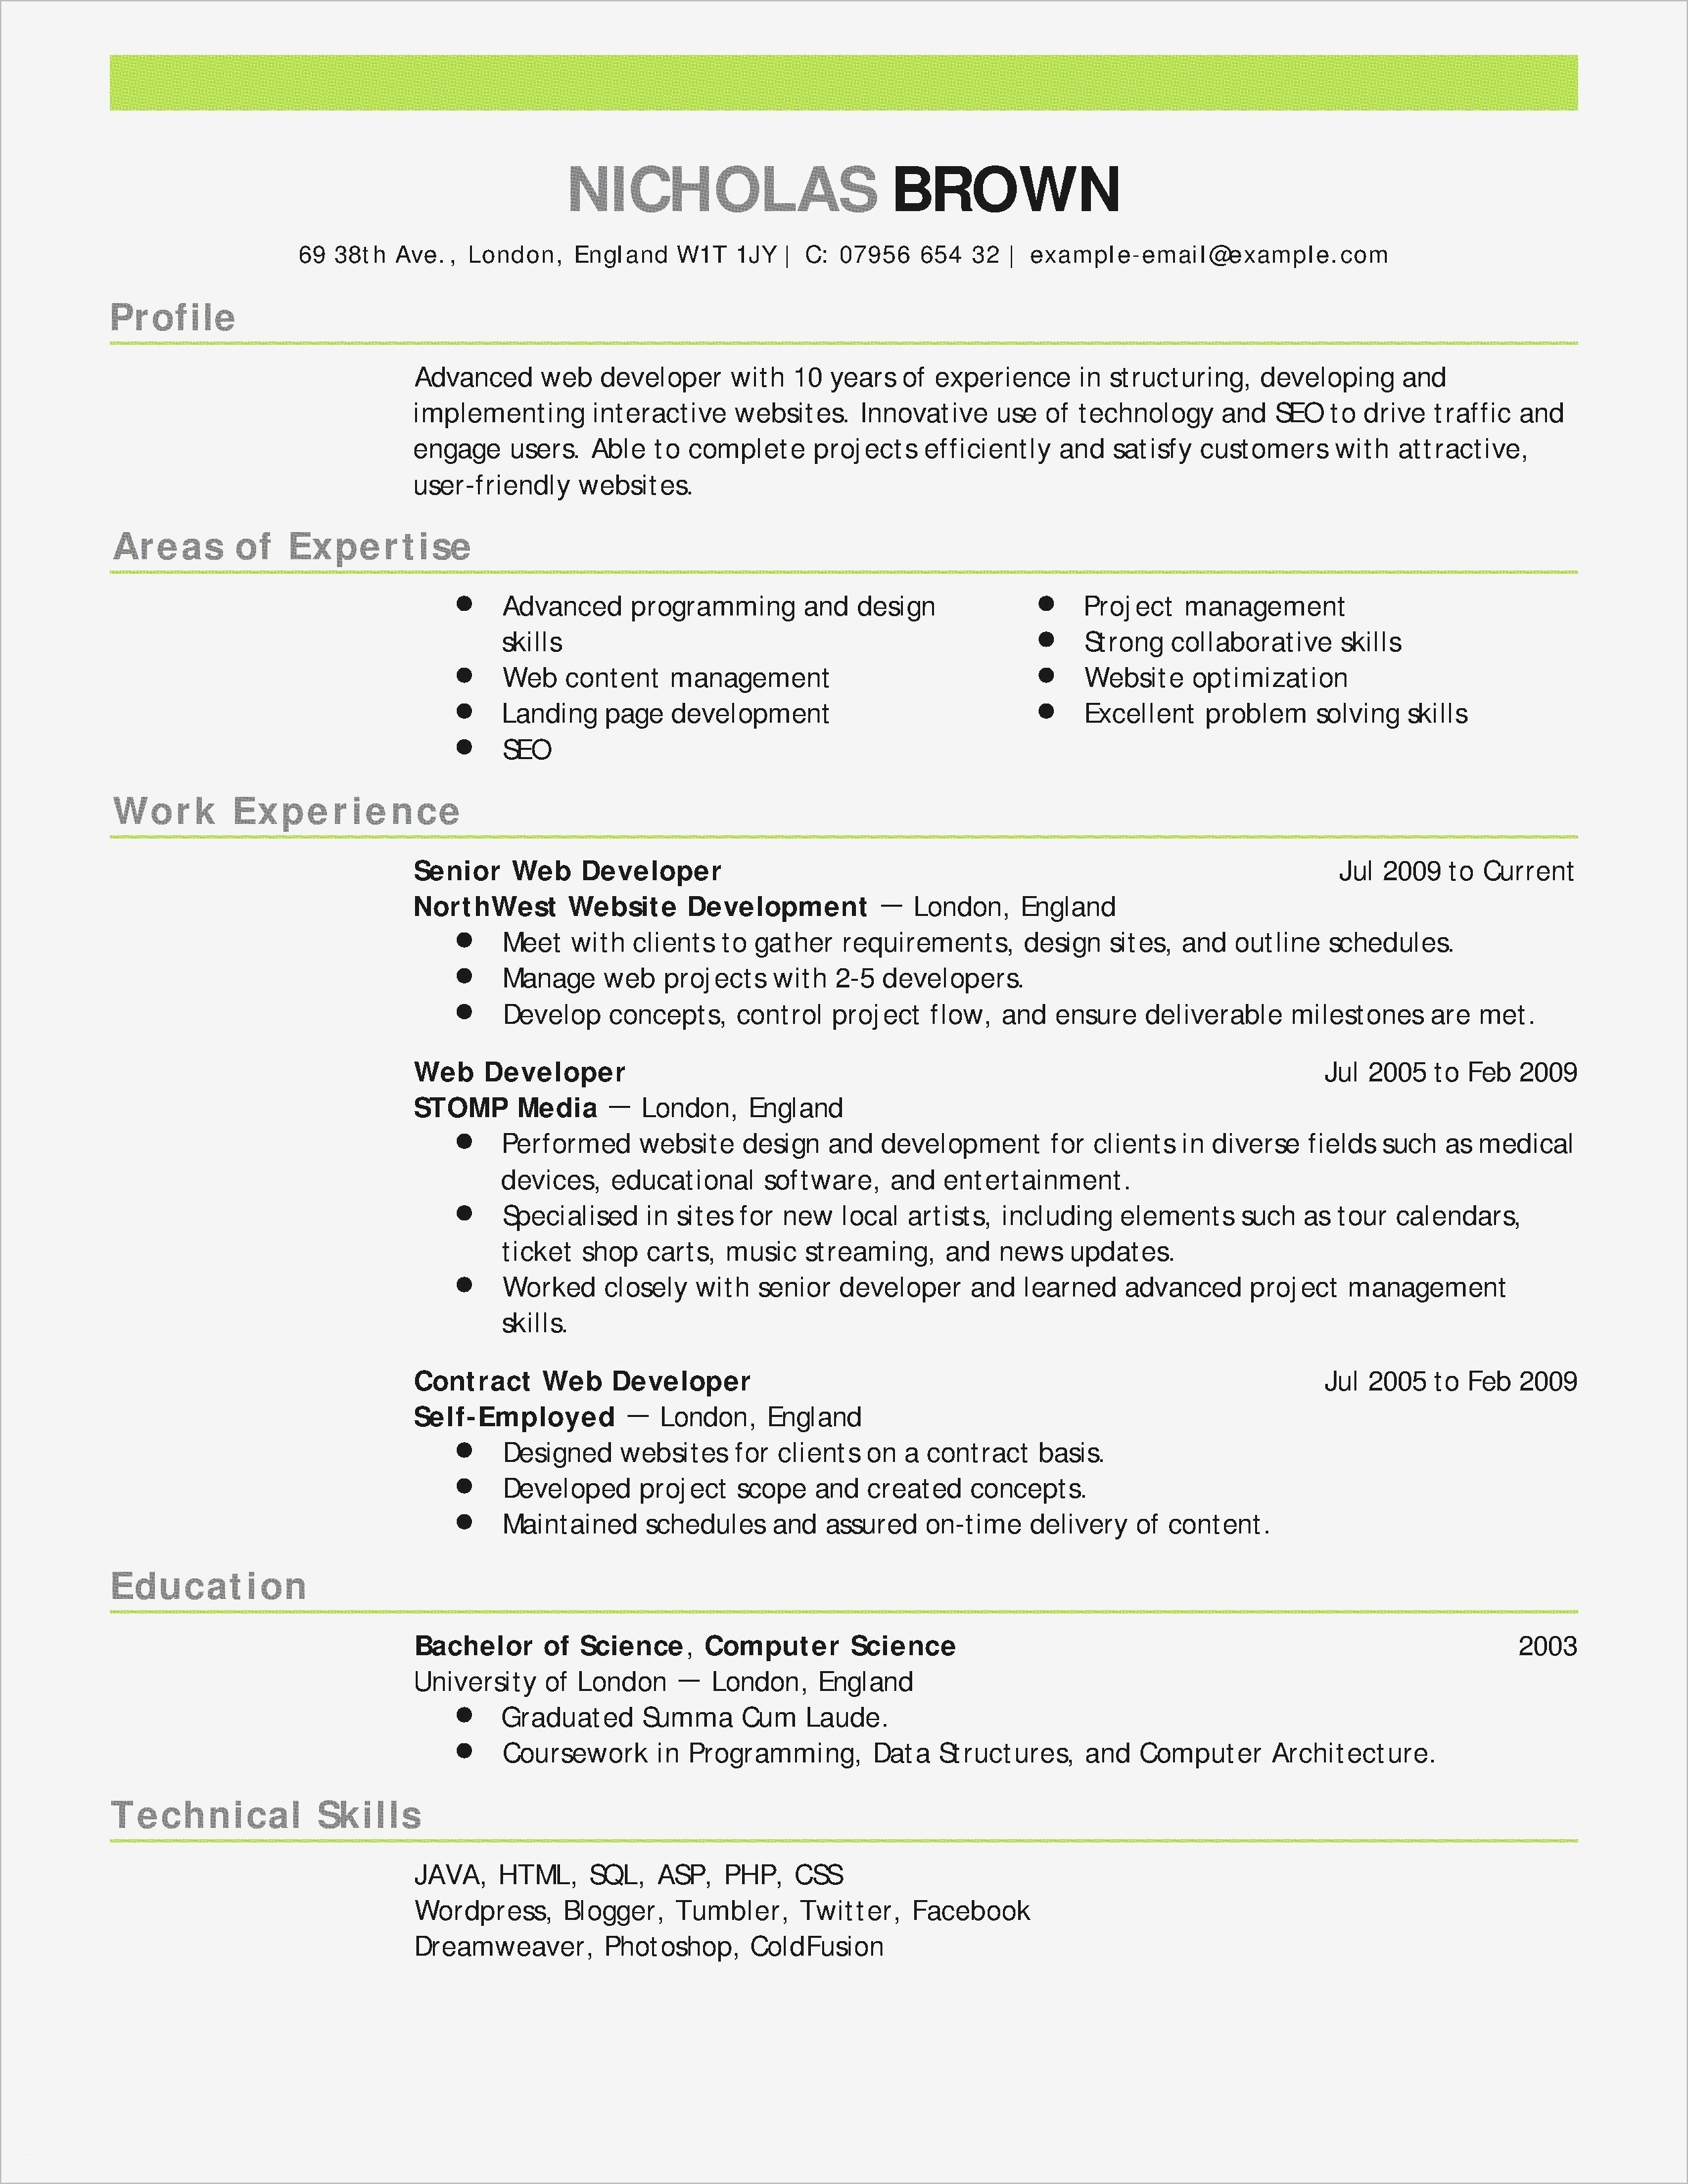 Free Resume App for android - Best Resume App Awesome Free Resume App Unique How to Do A Resume